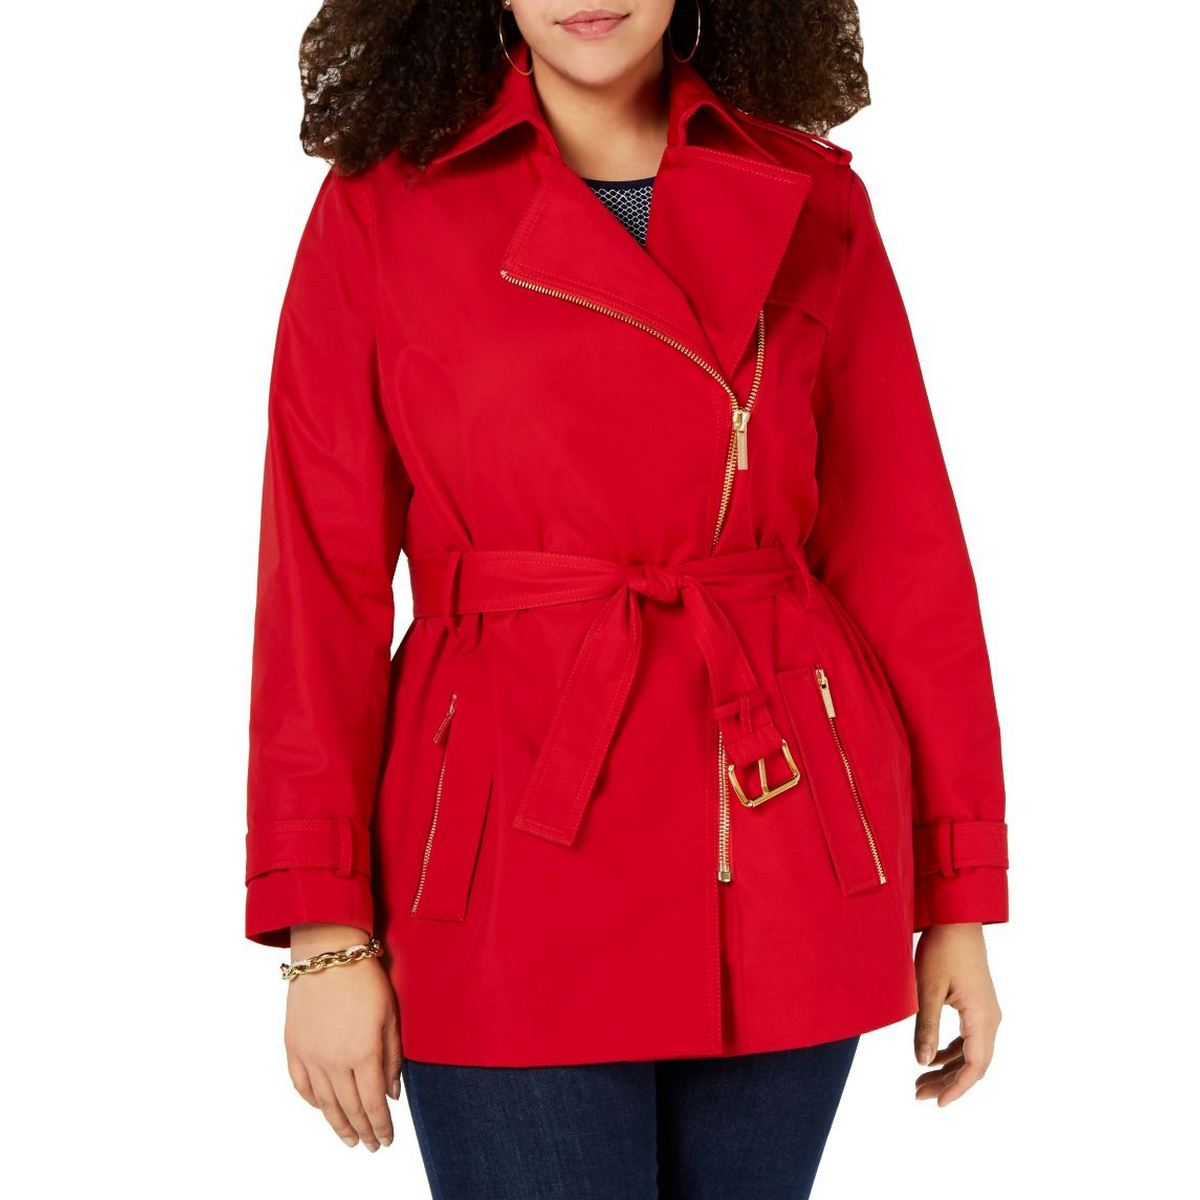 TOMMY HILFIGER NEW Women/'s Scarlet Button-detail Military Jacket Top TEDO